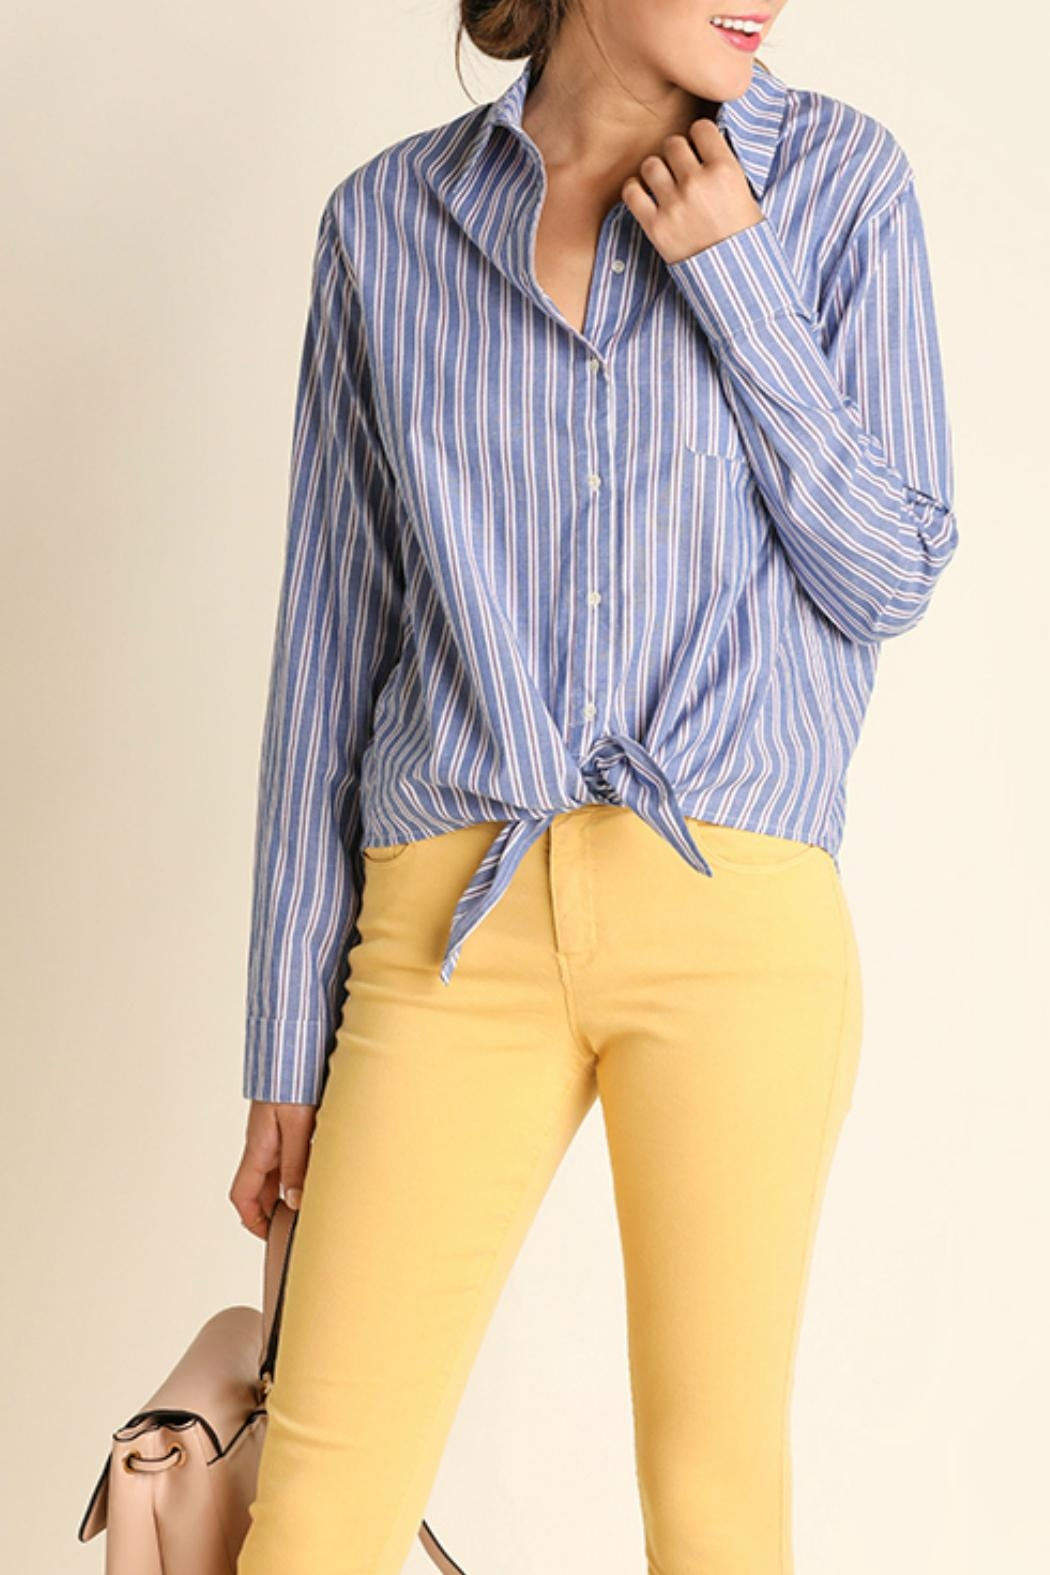 Umgee USA Striped Button Up Blouse - Front Cropped Image